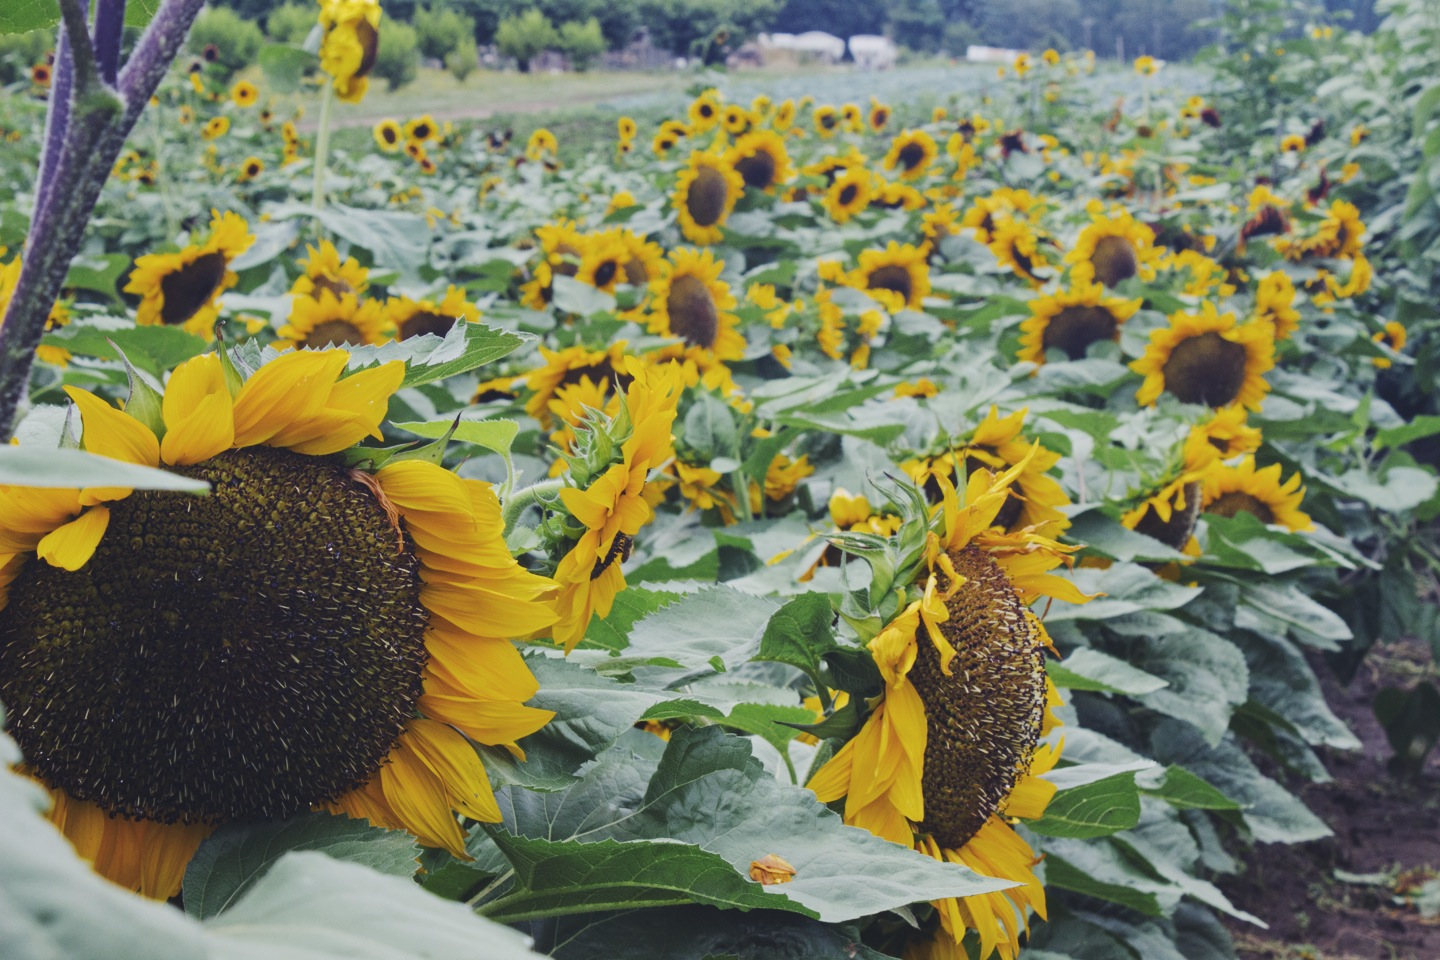 Sunflowers at Sauvie Island Farms by Eva Moon Press